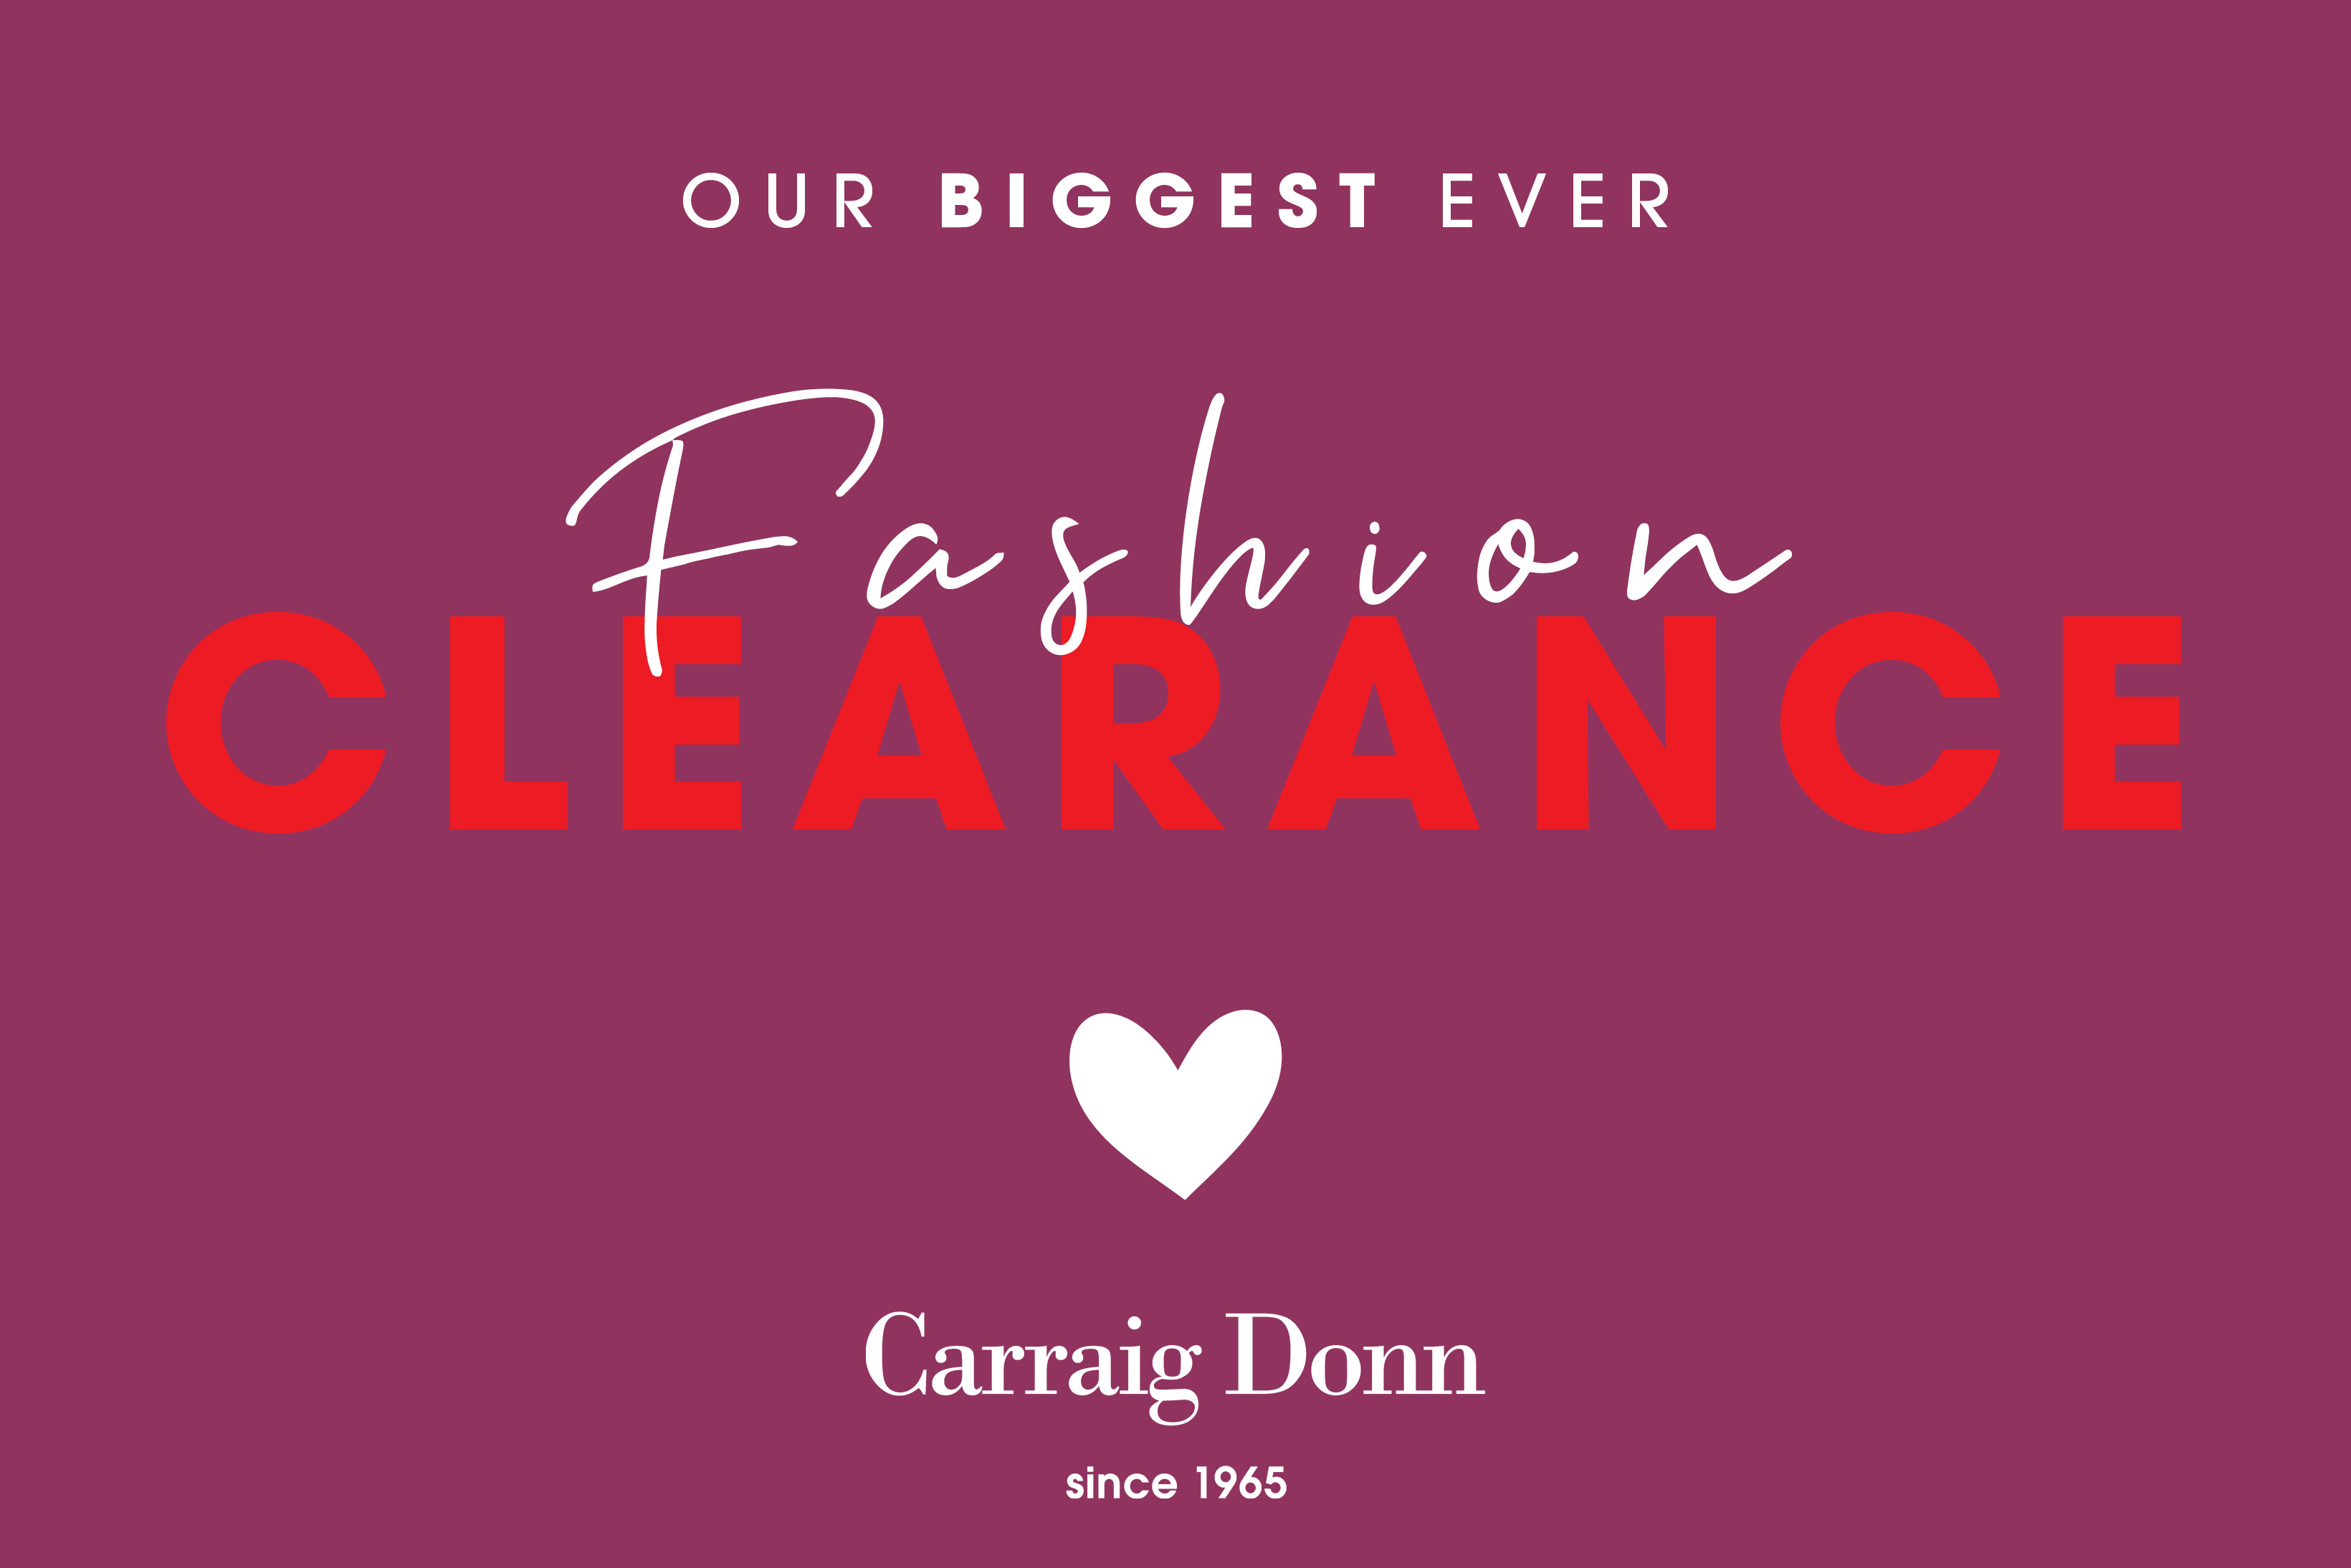 Massive Clearance Sale at Carraig Donn - EVERYTHING Must Go!